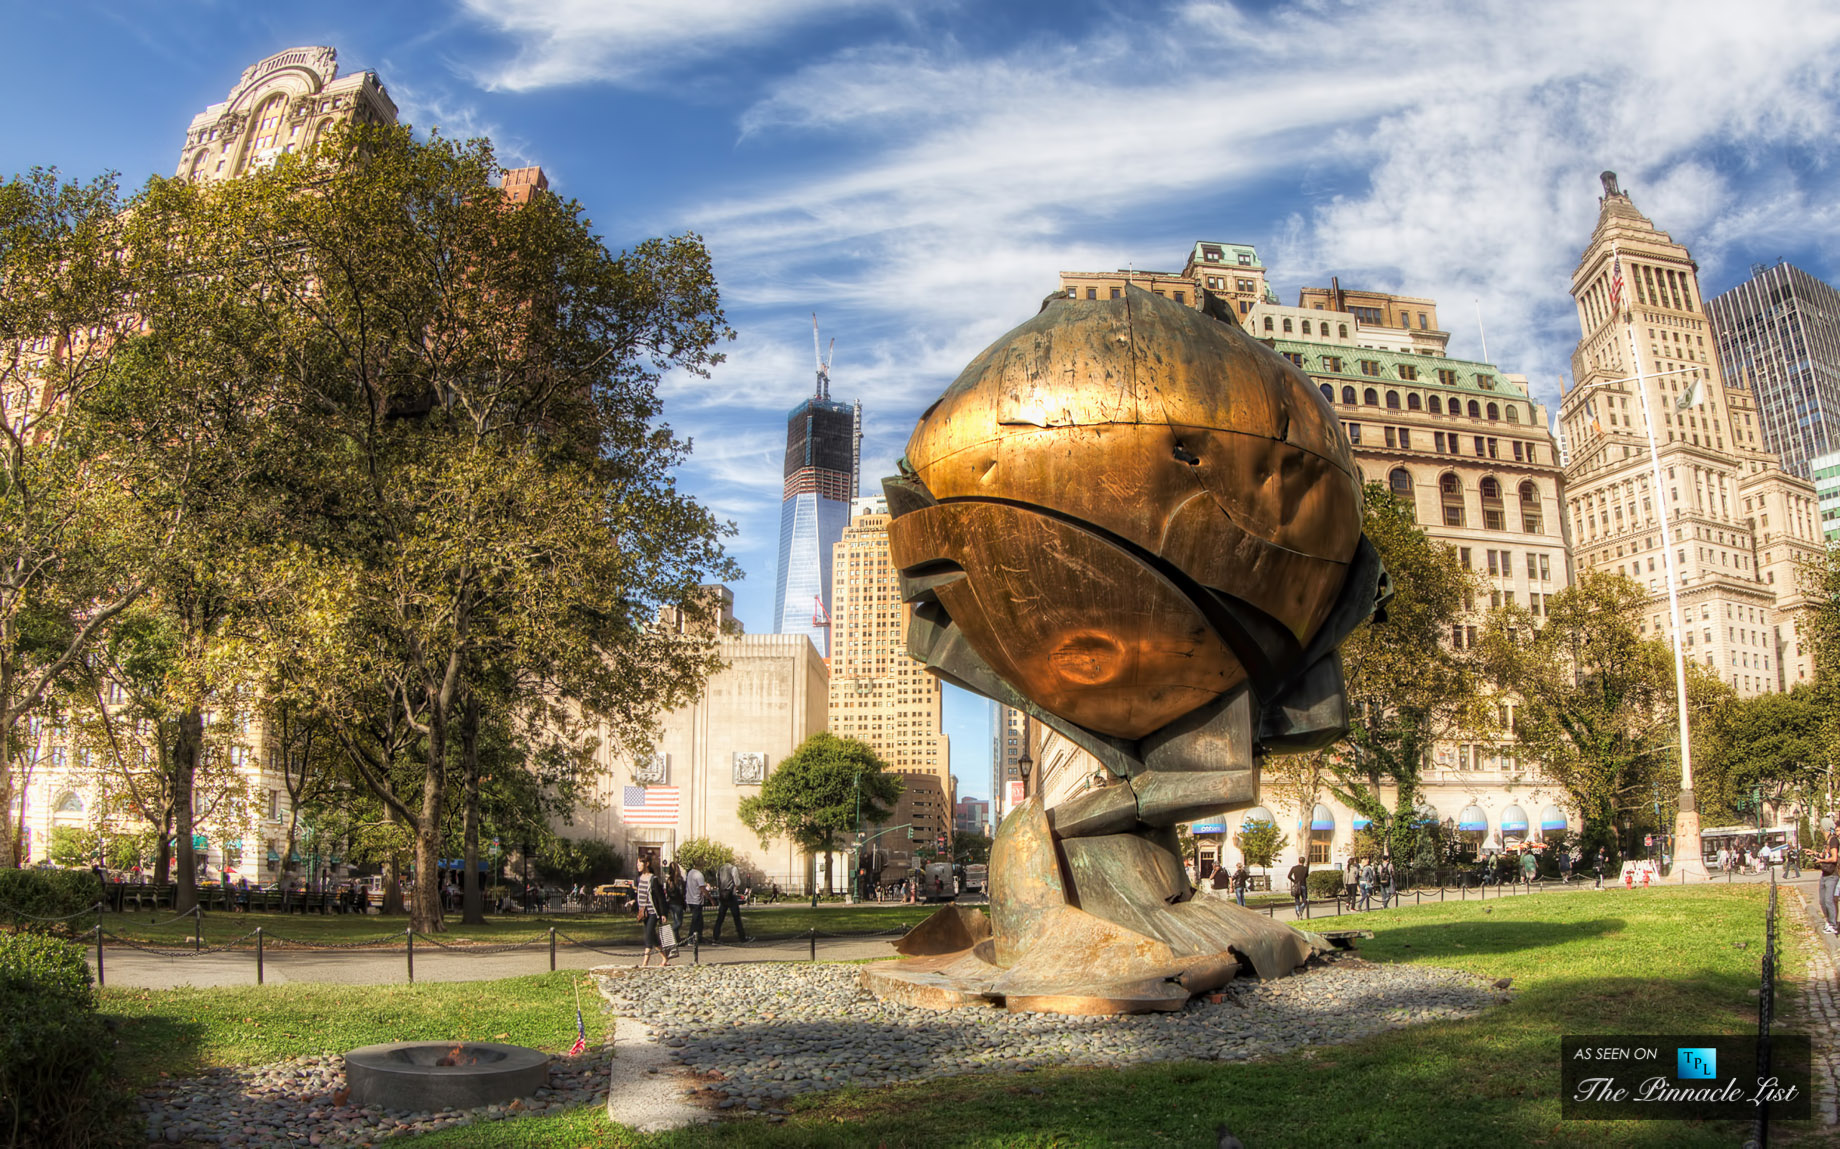 The Sphere at Battery Park - New York, NY 10004, USA